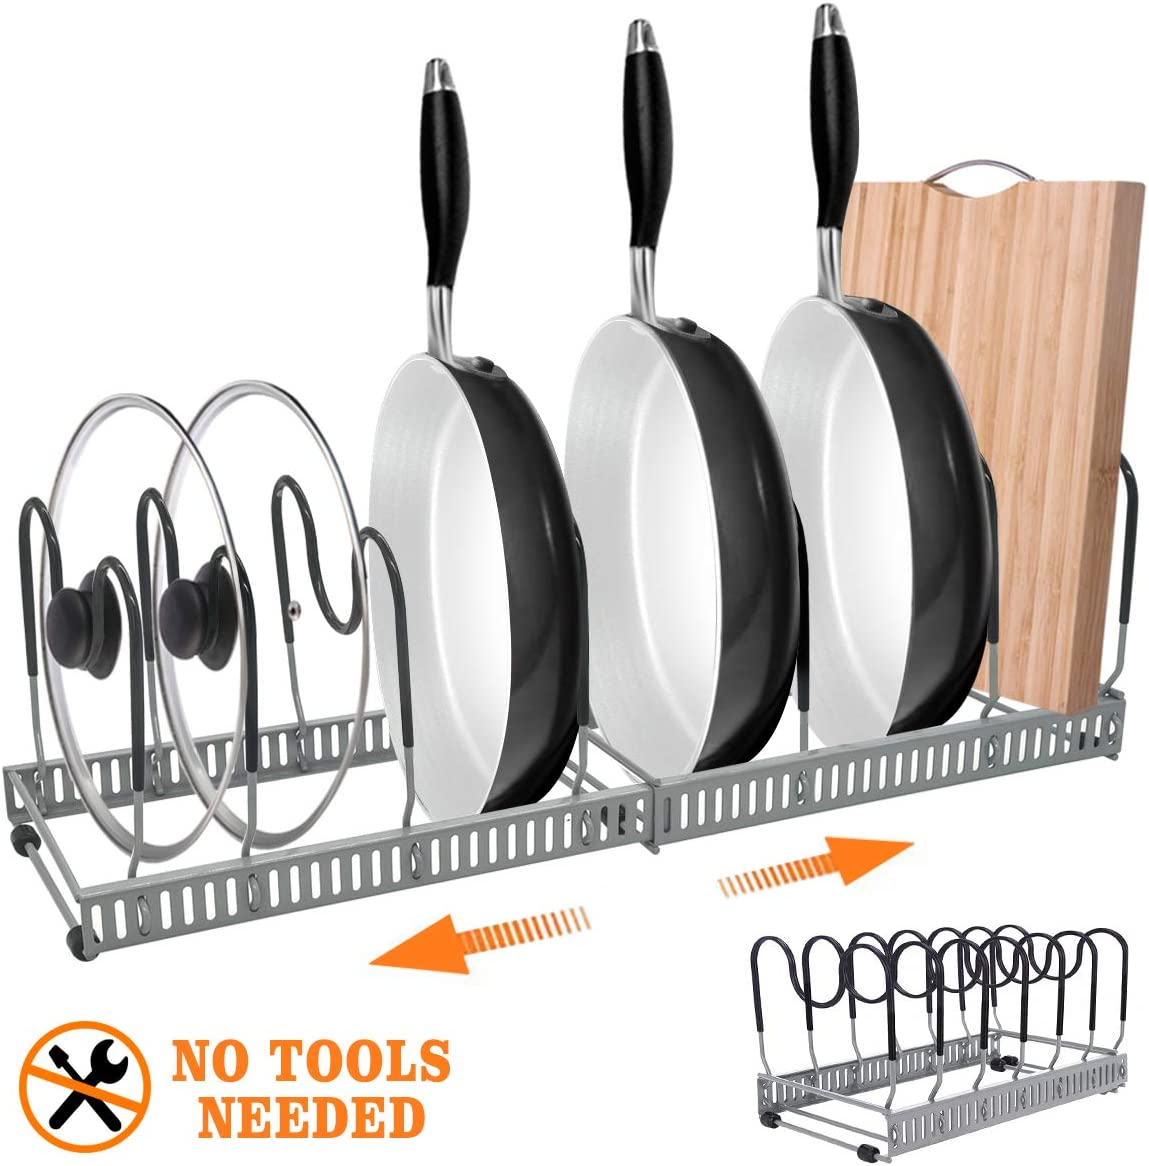 """Expandable Pan Rack Organizer with Knife Holder,G-TING 7+Adjustable Pot Lid Holders Bakeware Rack,Kitchen Cookware Pantry Cabinet Storage Rack with 7 Expandable Adjustable Dividers (Up to 23"""") (Grey)"""